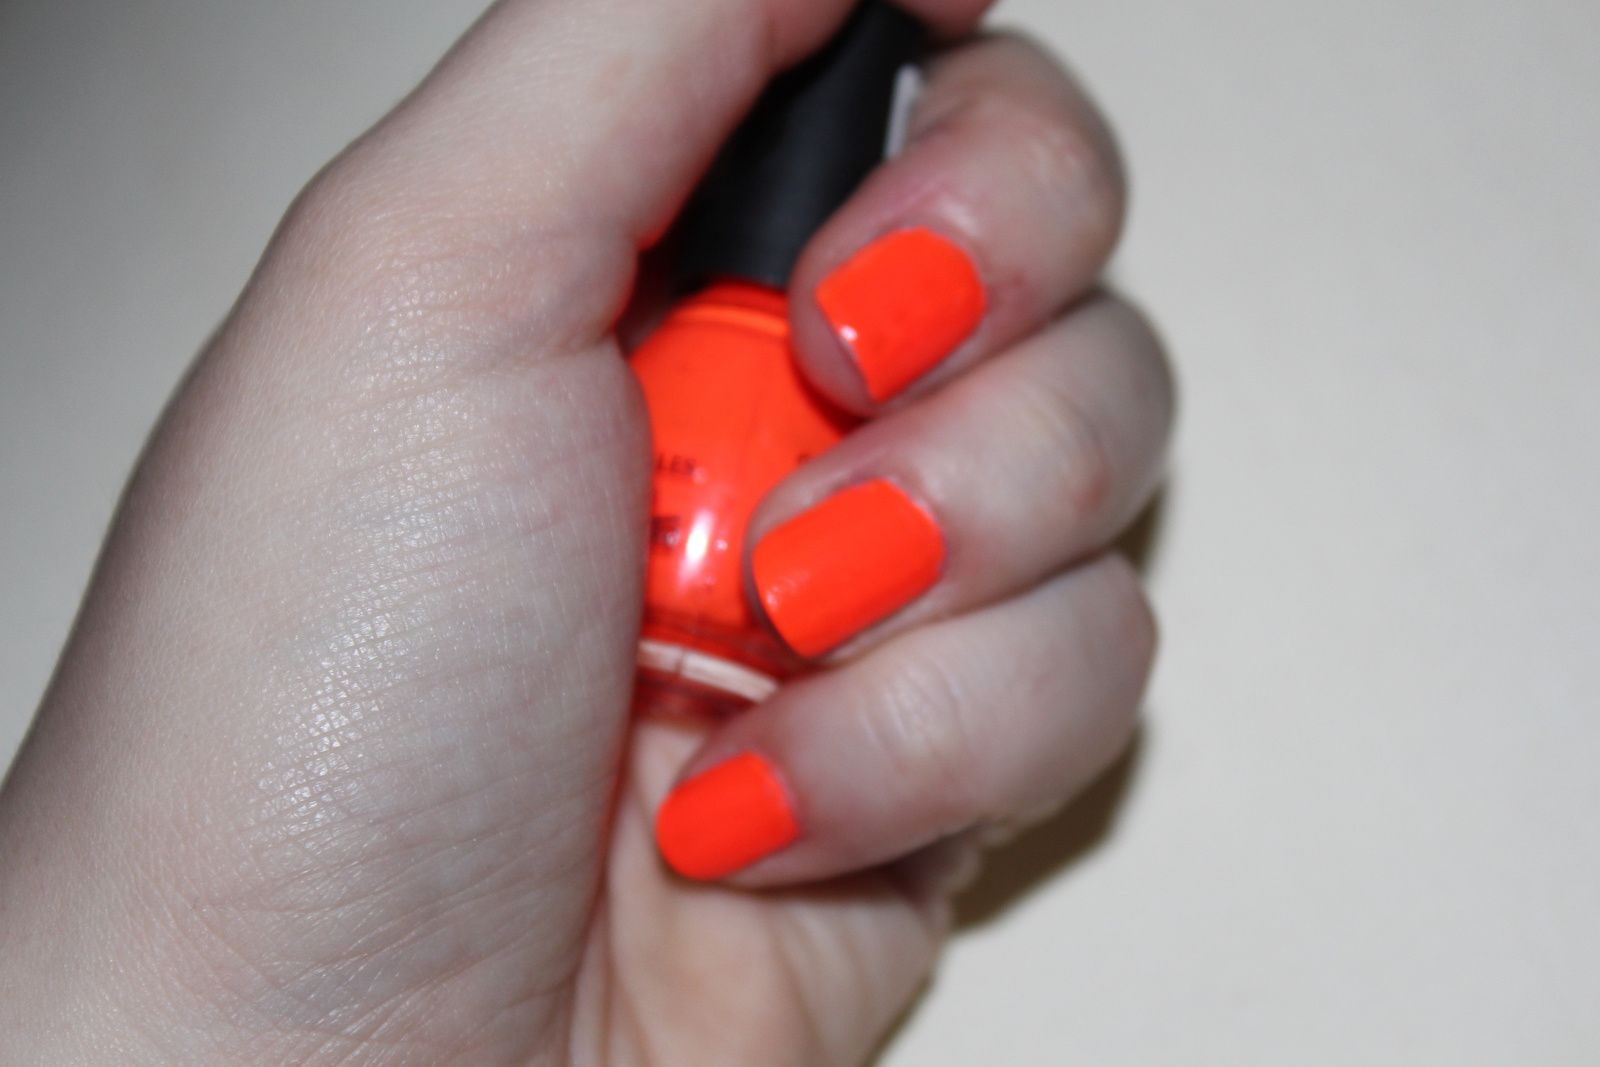 Le vernis de la semaine : orange fluo, Sinfulcolors